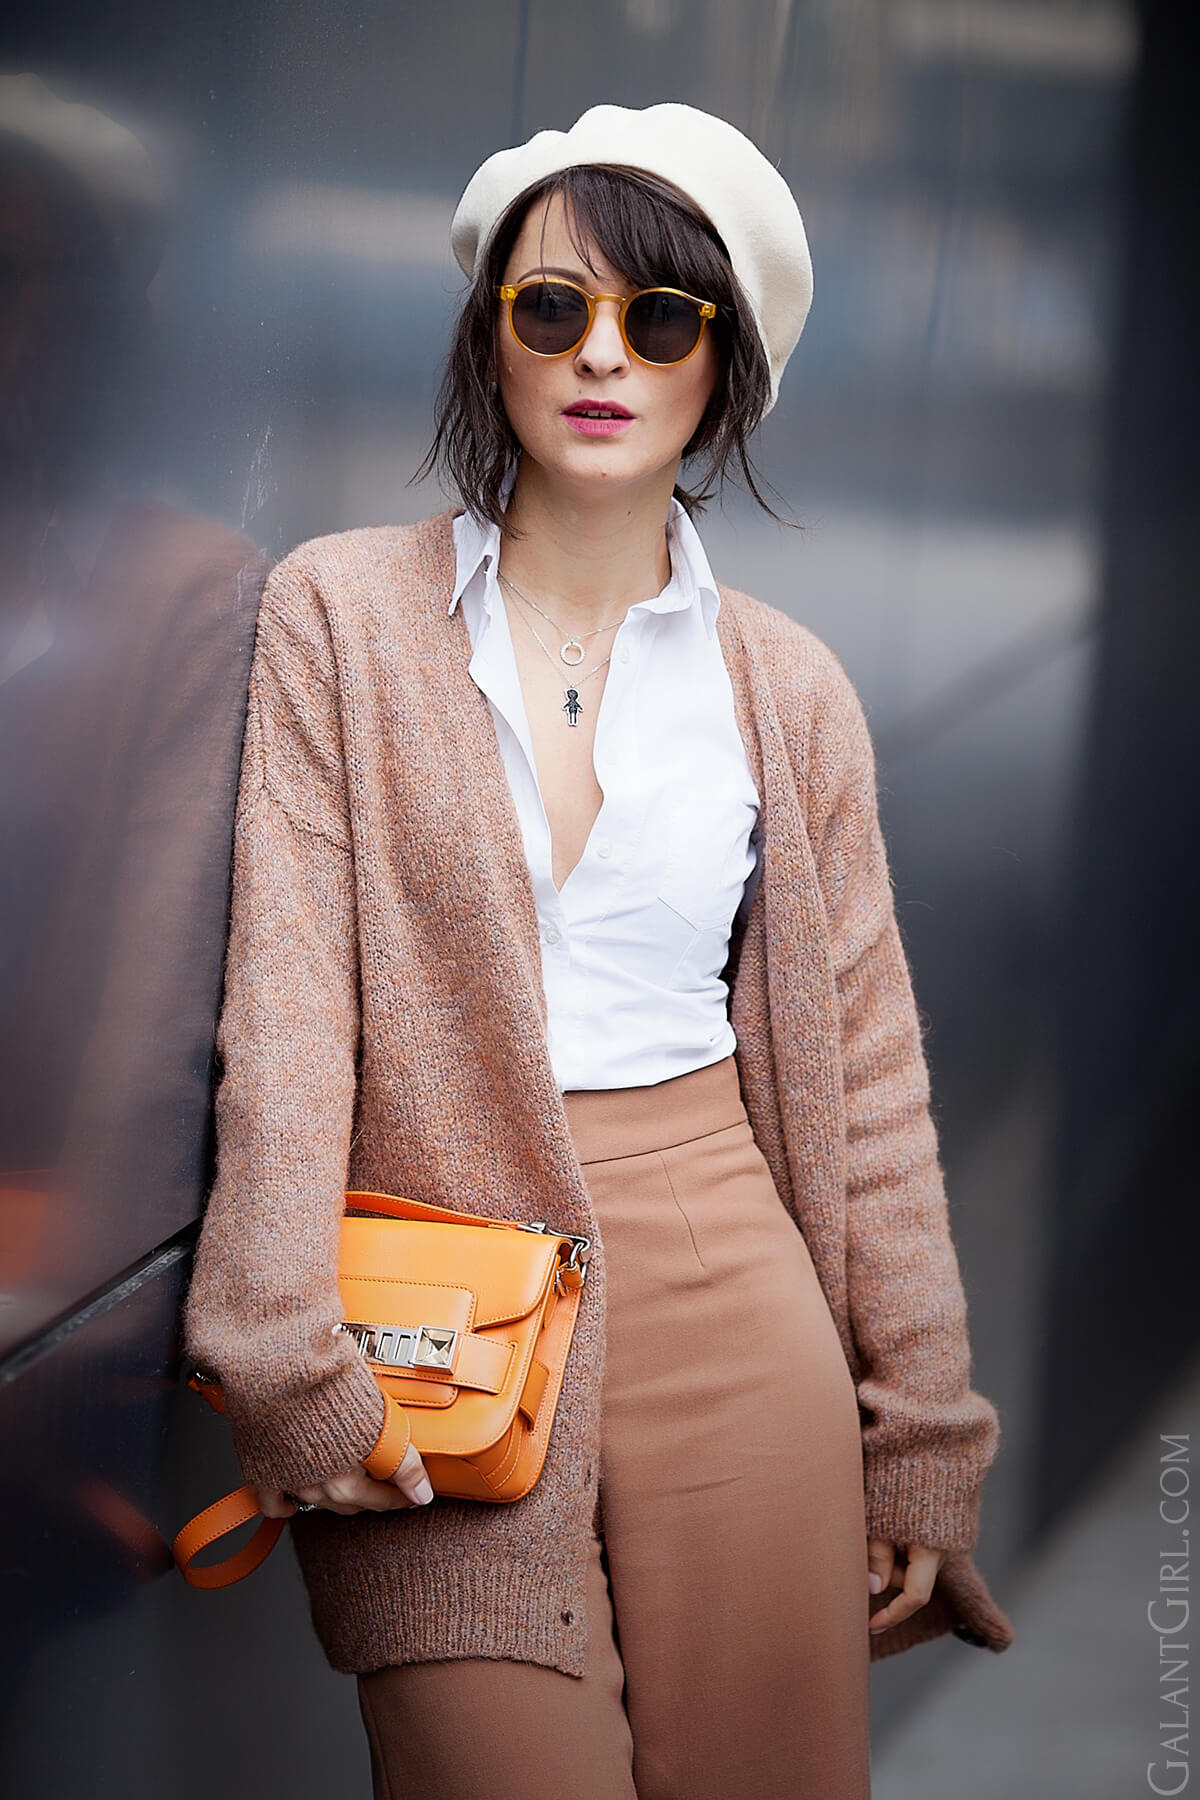 caramel+colors+outfit-wool+beret+outfit